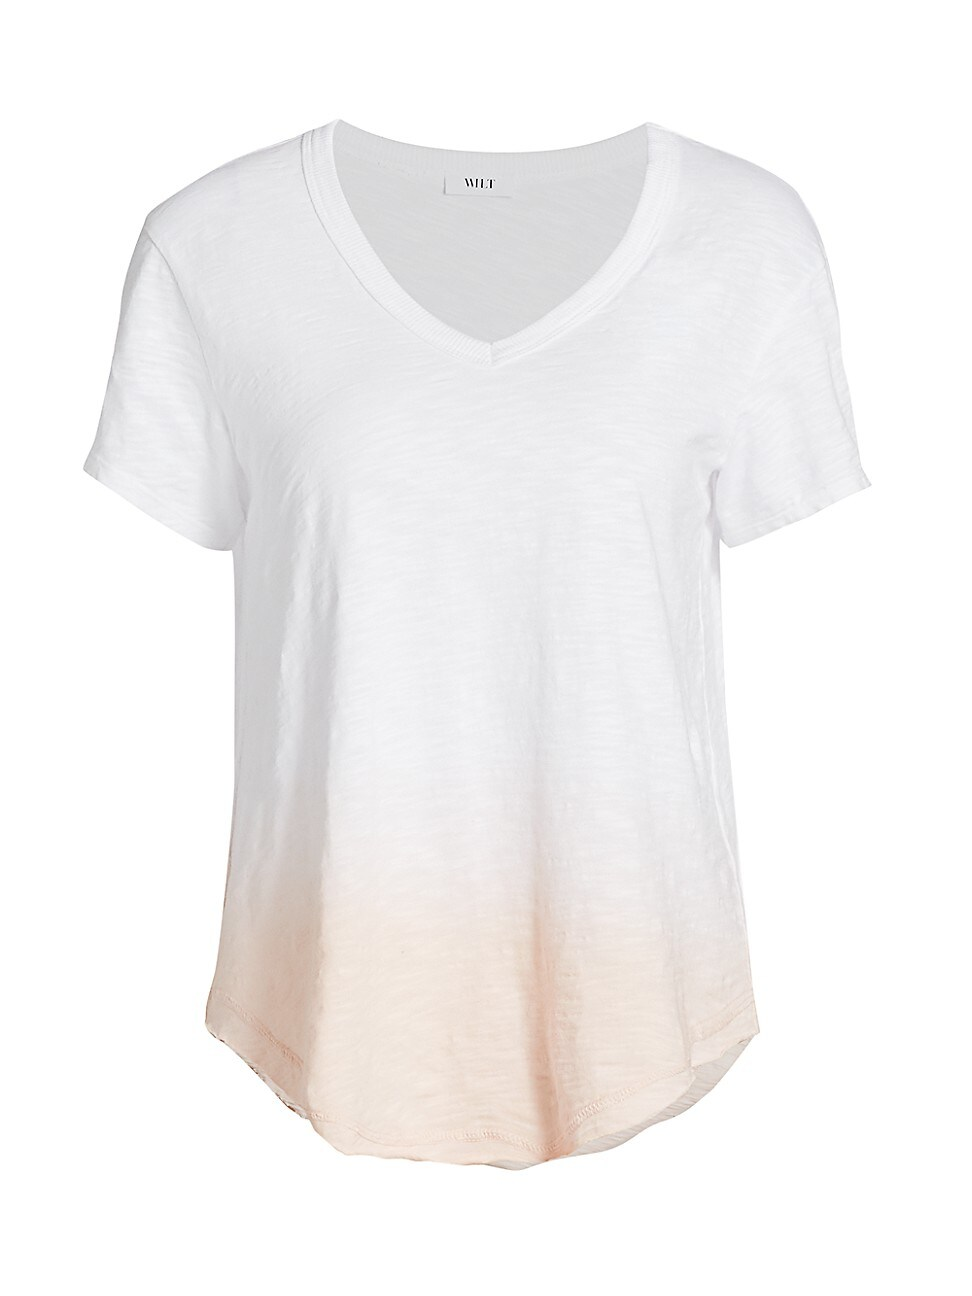 Wilt WOMEN'S OMBRÉ DRAPED T-SHIRT